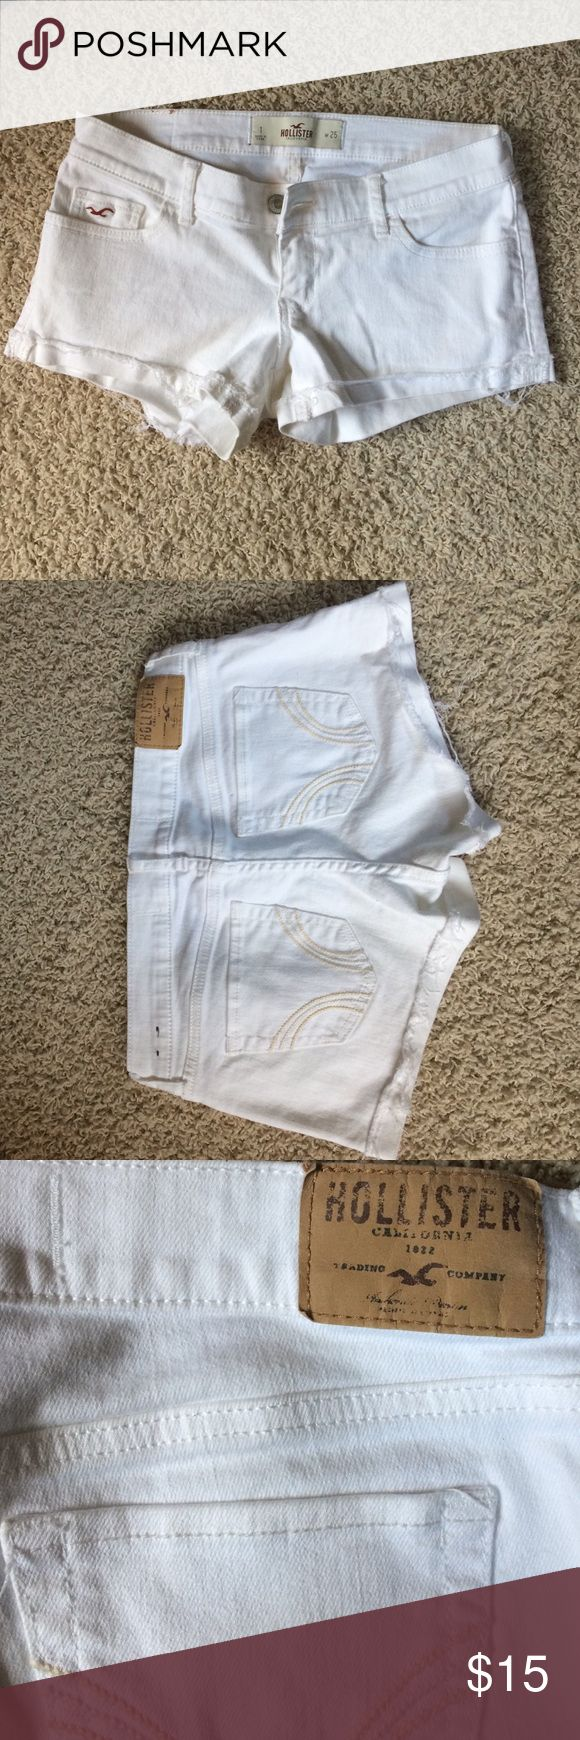 White hollister shorts White cuffed hollister shorts low rise Hollister Shorts Jean Shorts